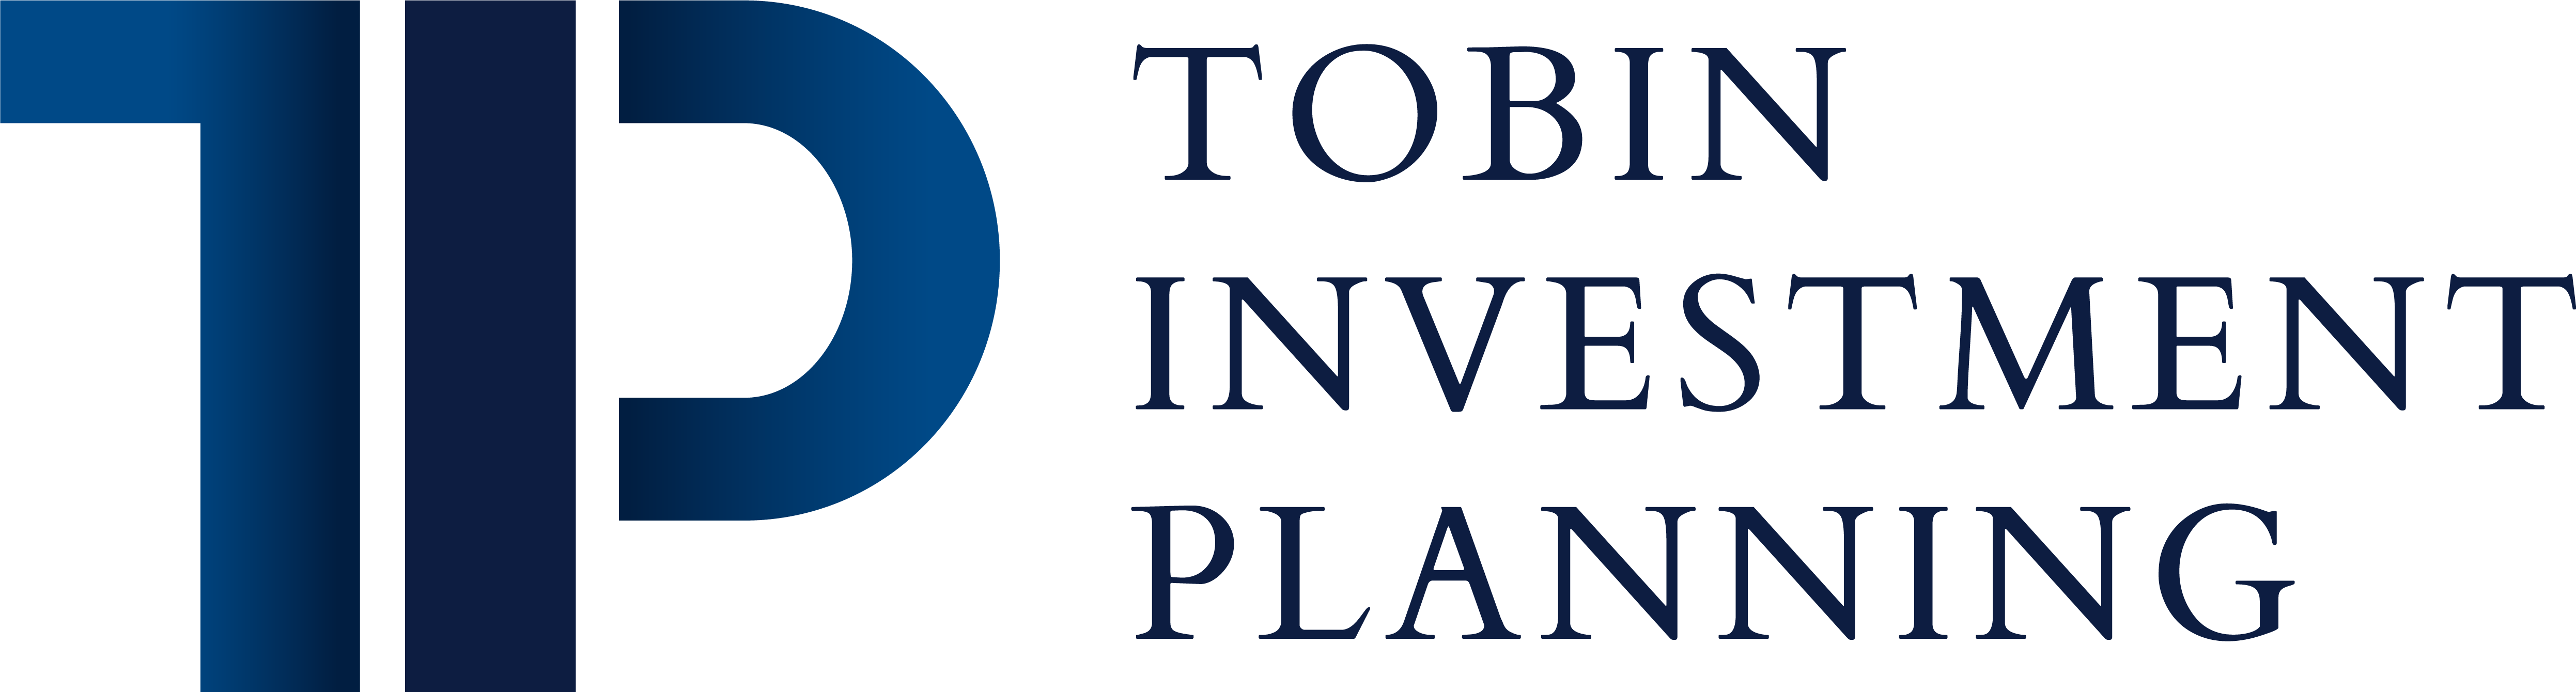 Logo for Tobin Investment Planning